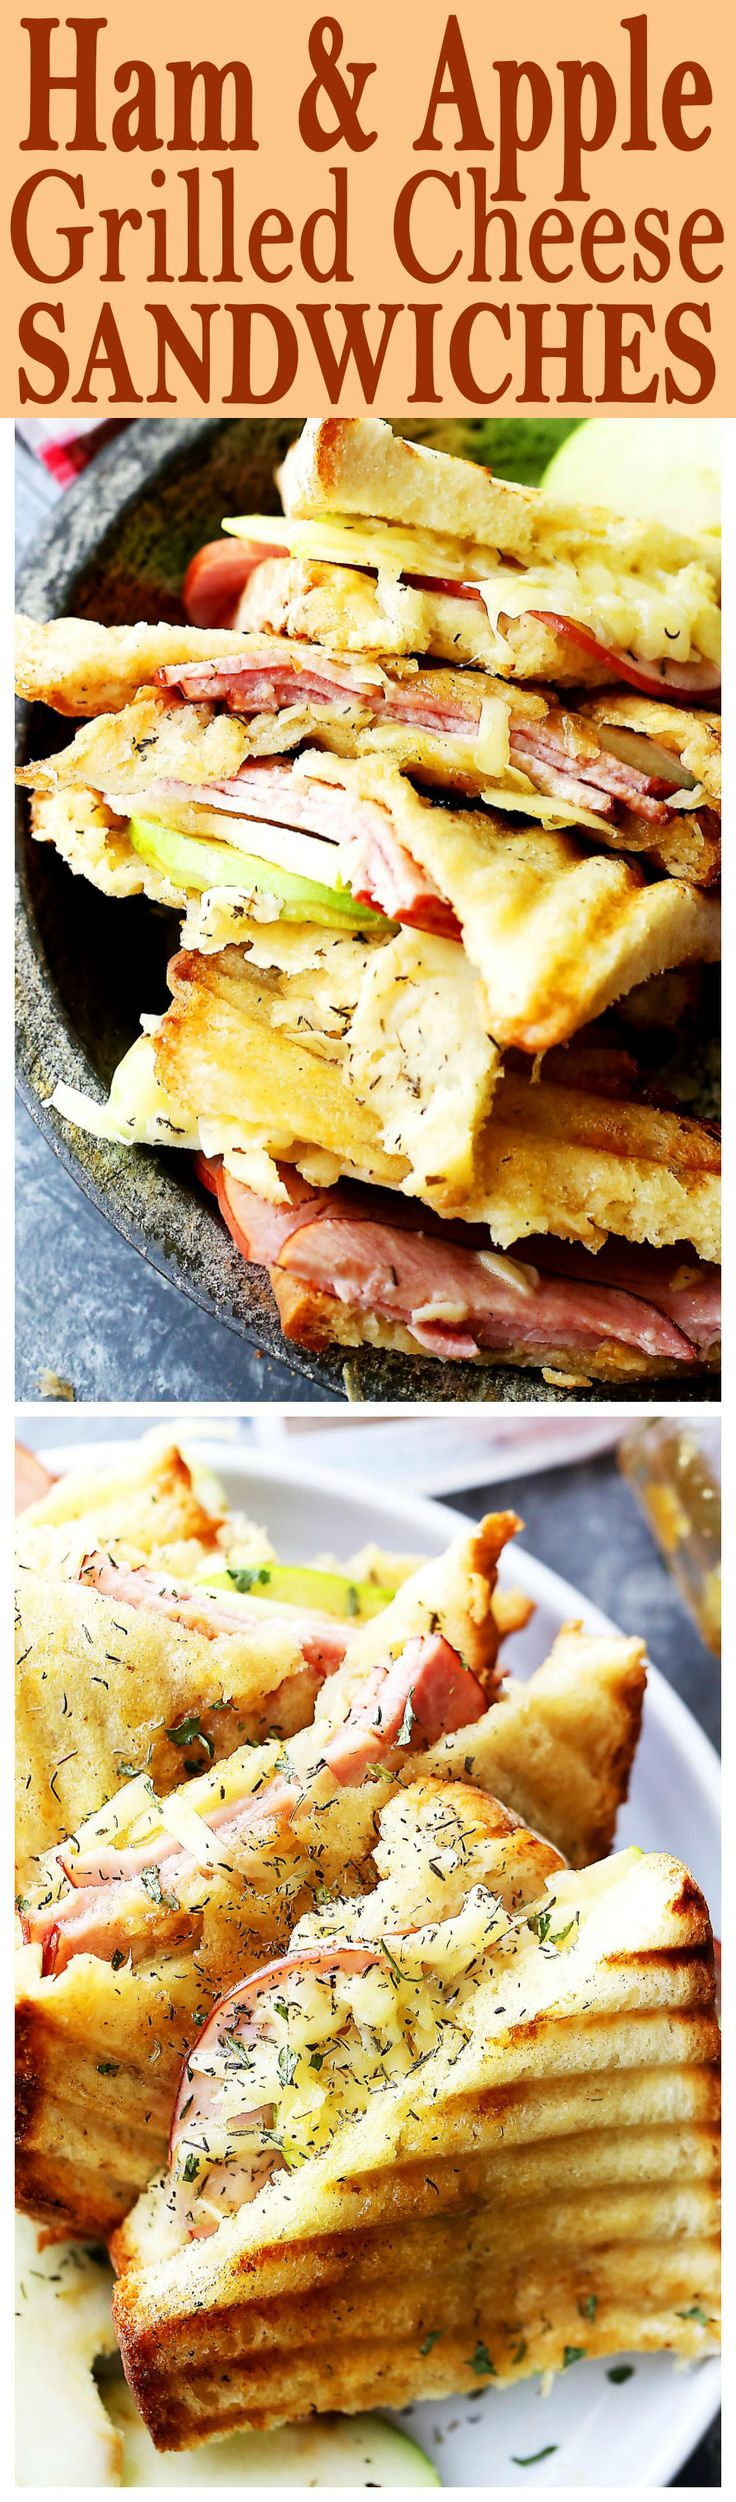 Ham and Apple Grilled Cheese Sandwich - Transform the classic grilled cheese sandwich with a perfect combination of flavors and textures including apples, ham, and gruyere cheese!